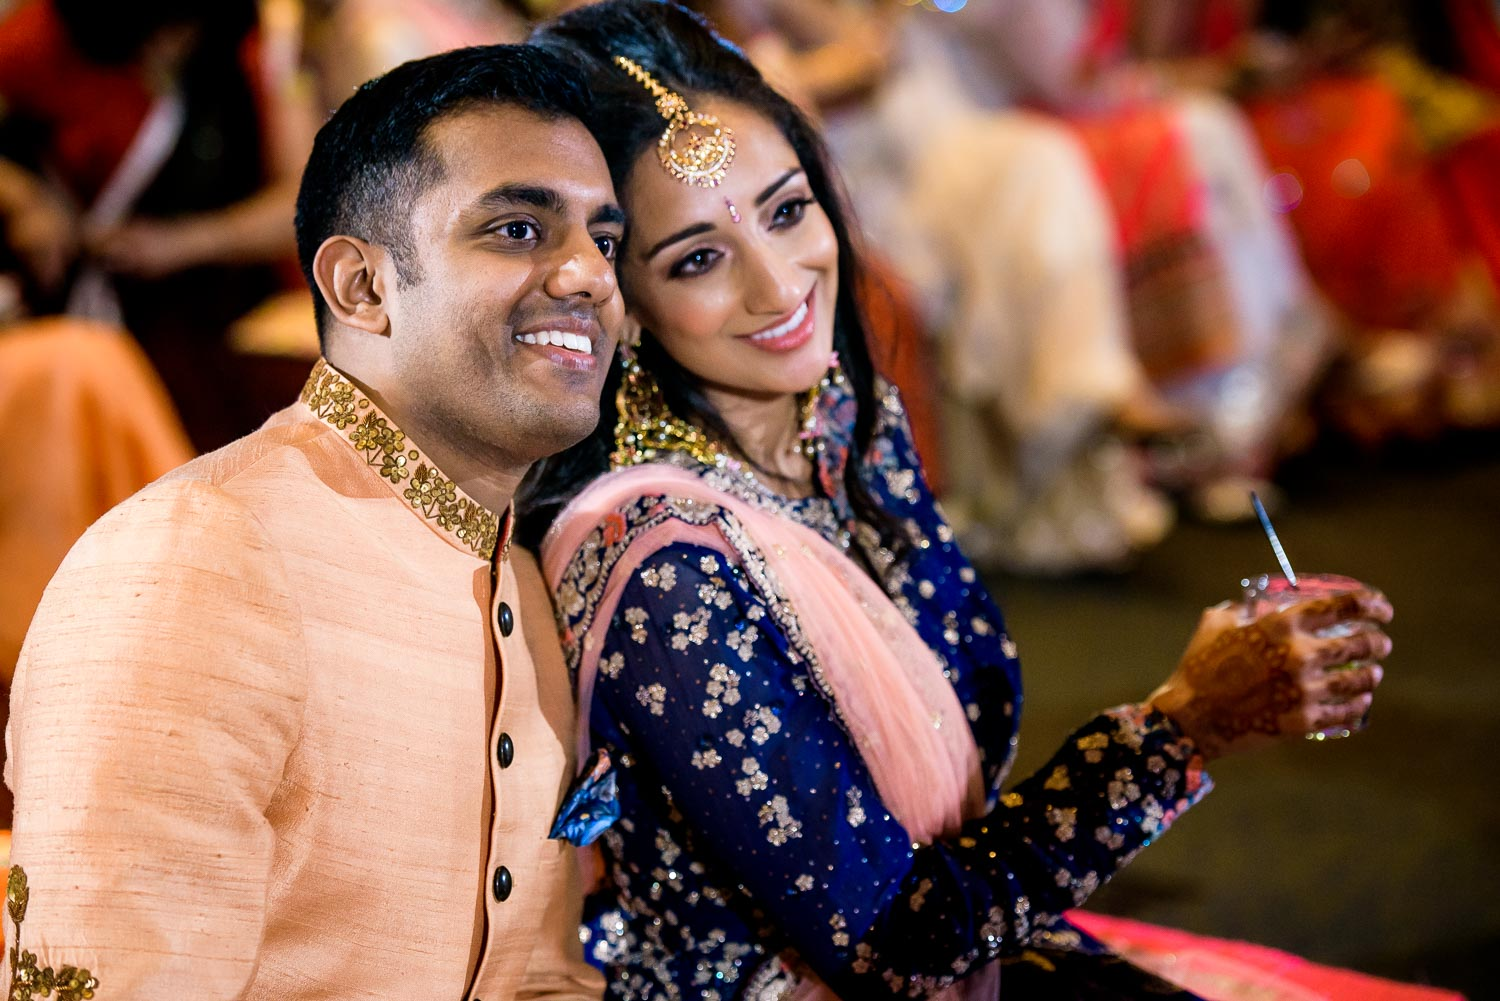 Bride and groom watch the performances during an Indian wedding sangeet at Stonegate Banquets in Hoffman Estates.